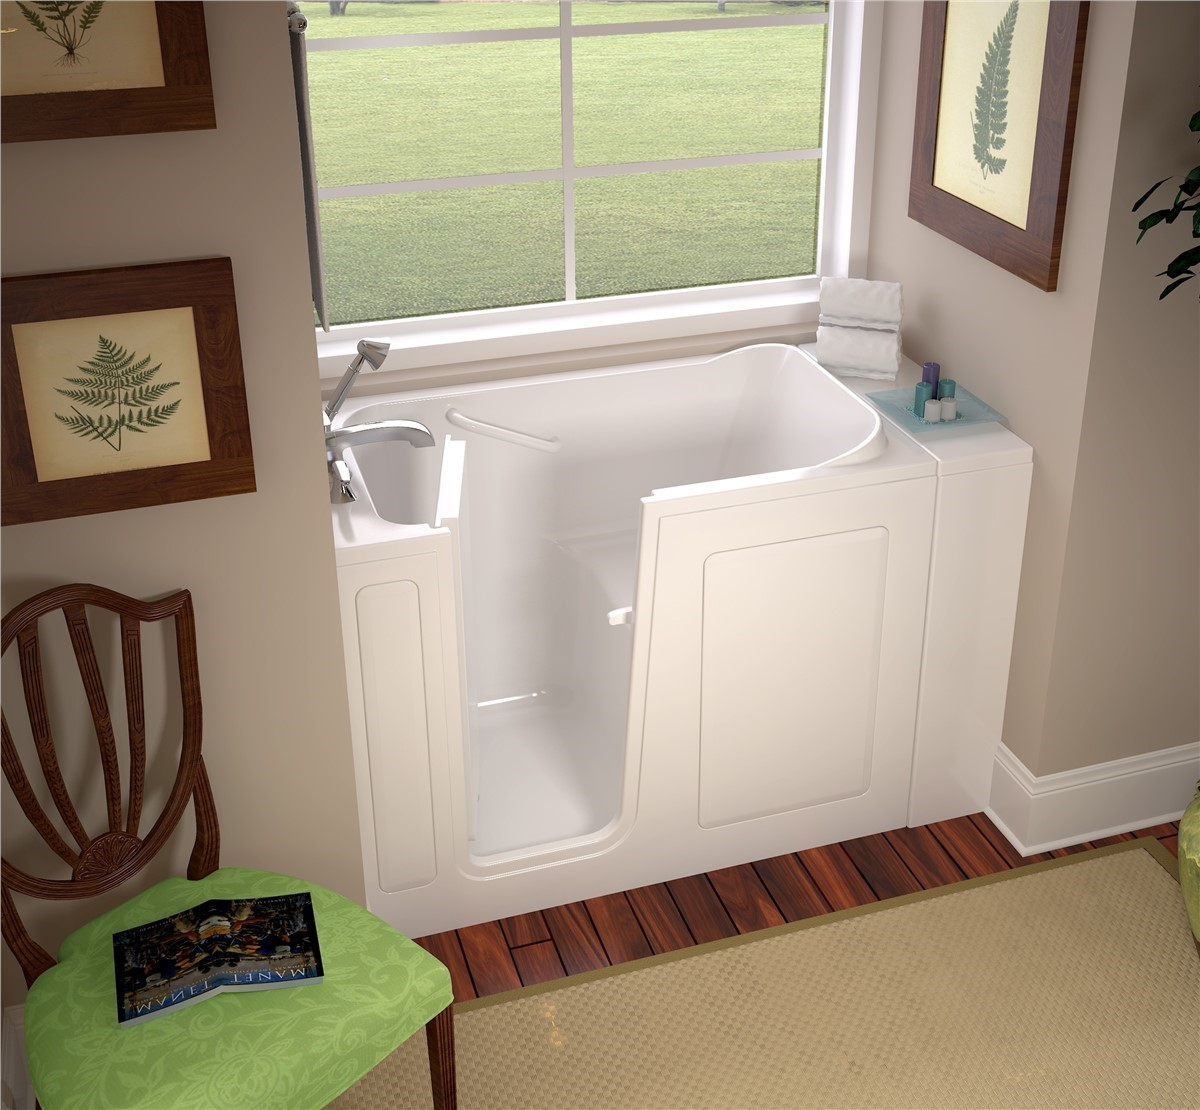 Bathroom Remodel Albuquerque Decor walk-in bathtubs | bathroom remodeling | nm | sandia sunrooms